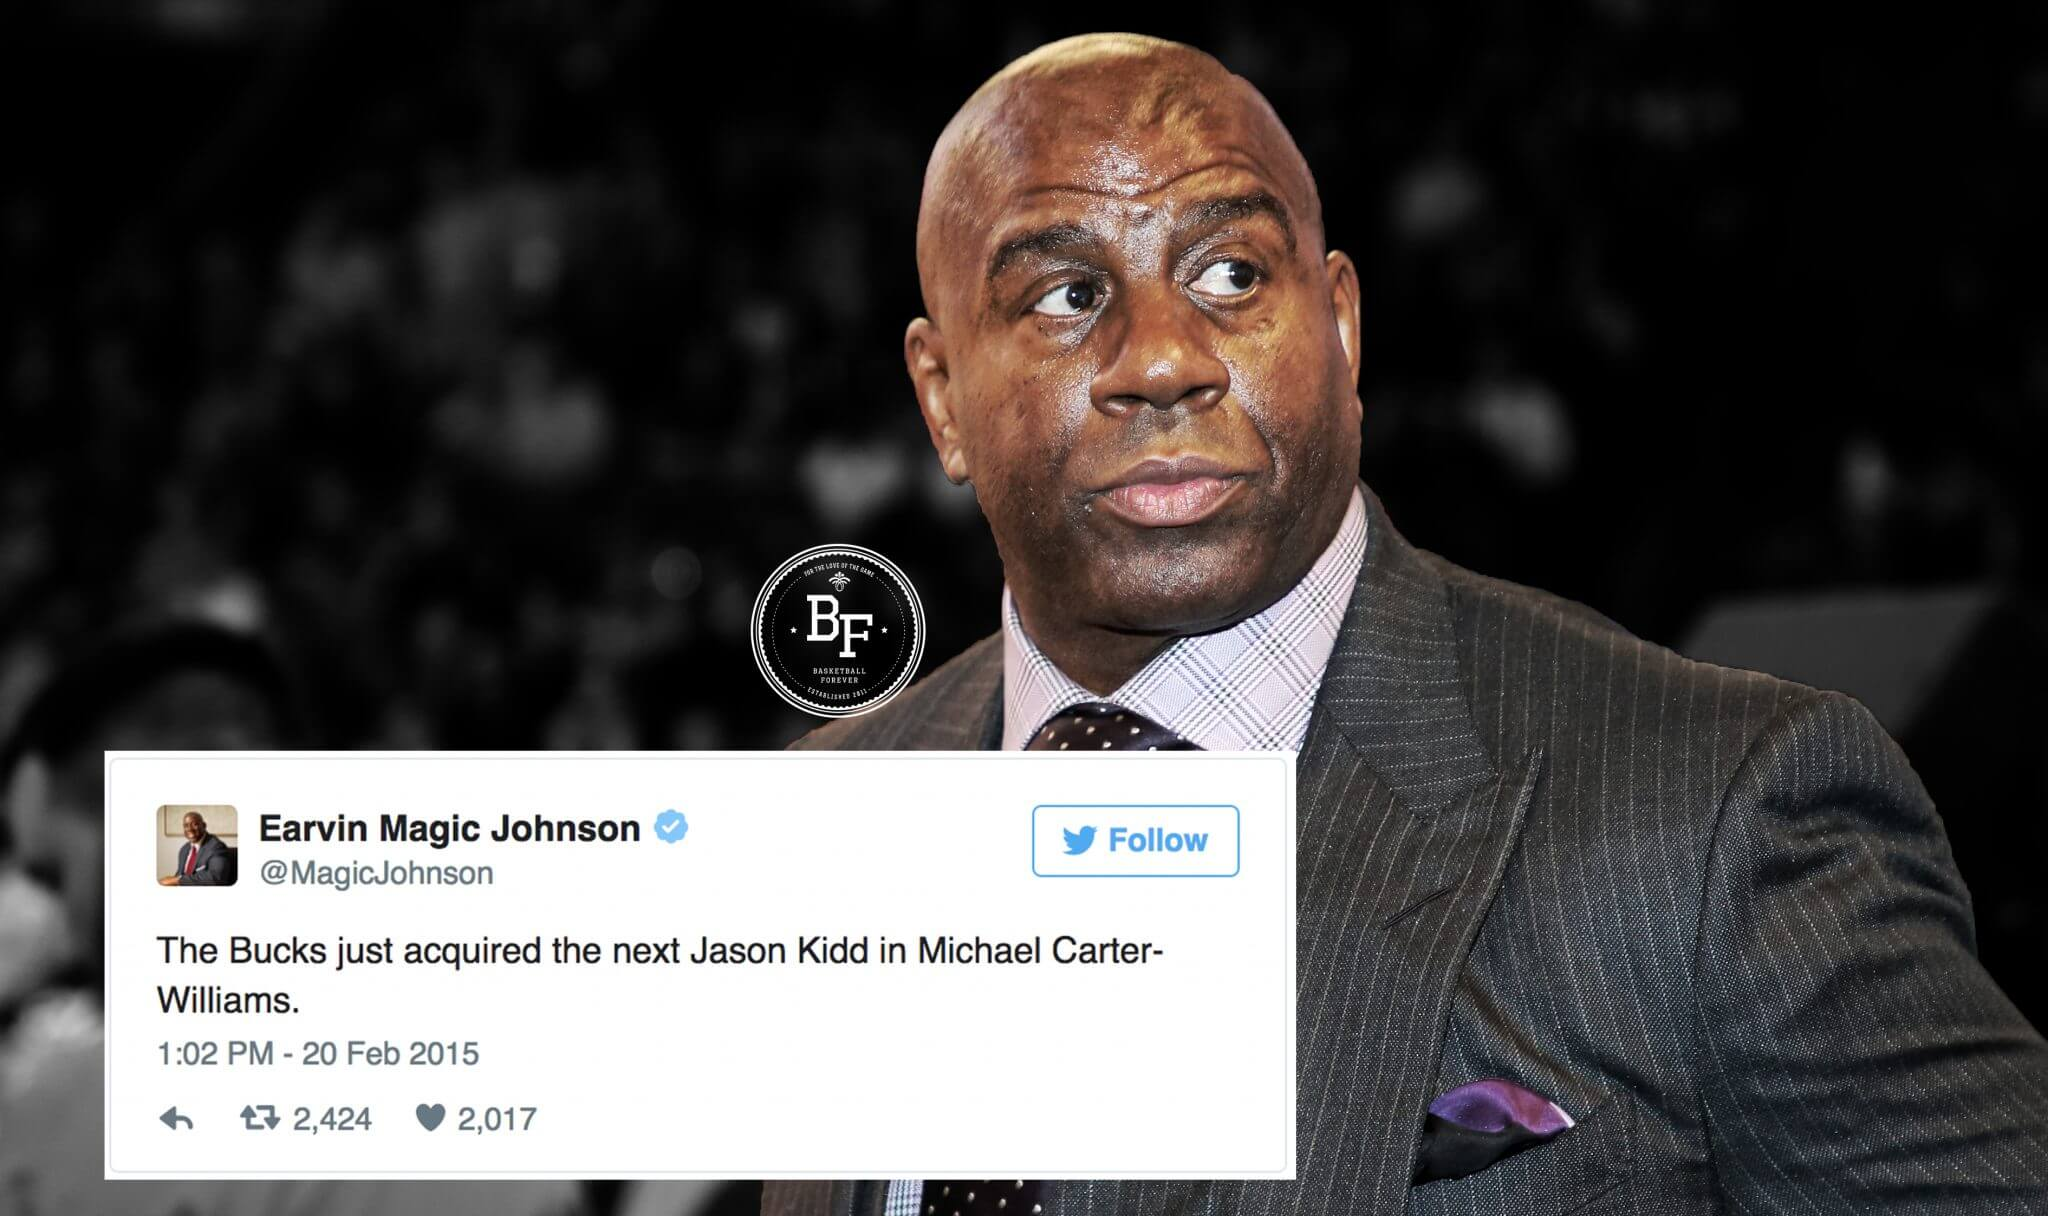 Fans Dig Up Magic Johnson s Old Tweets After He s Named President